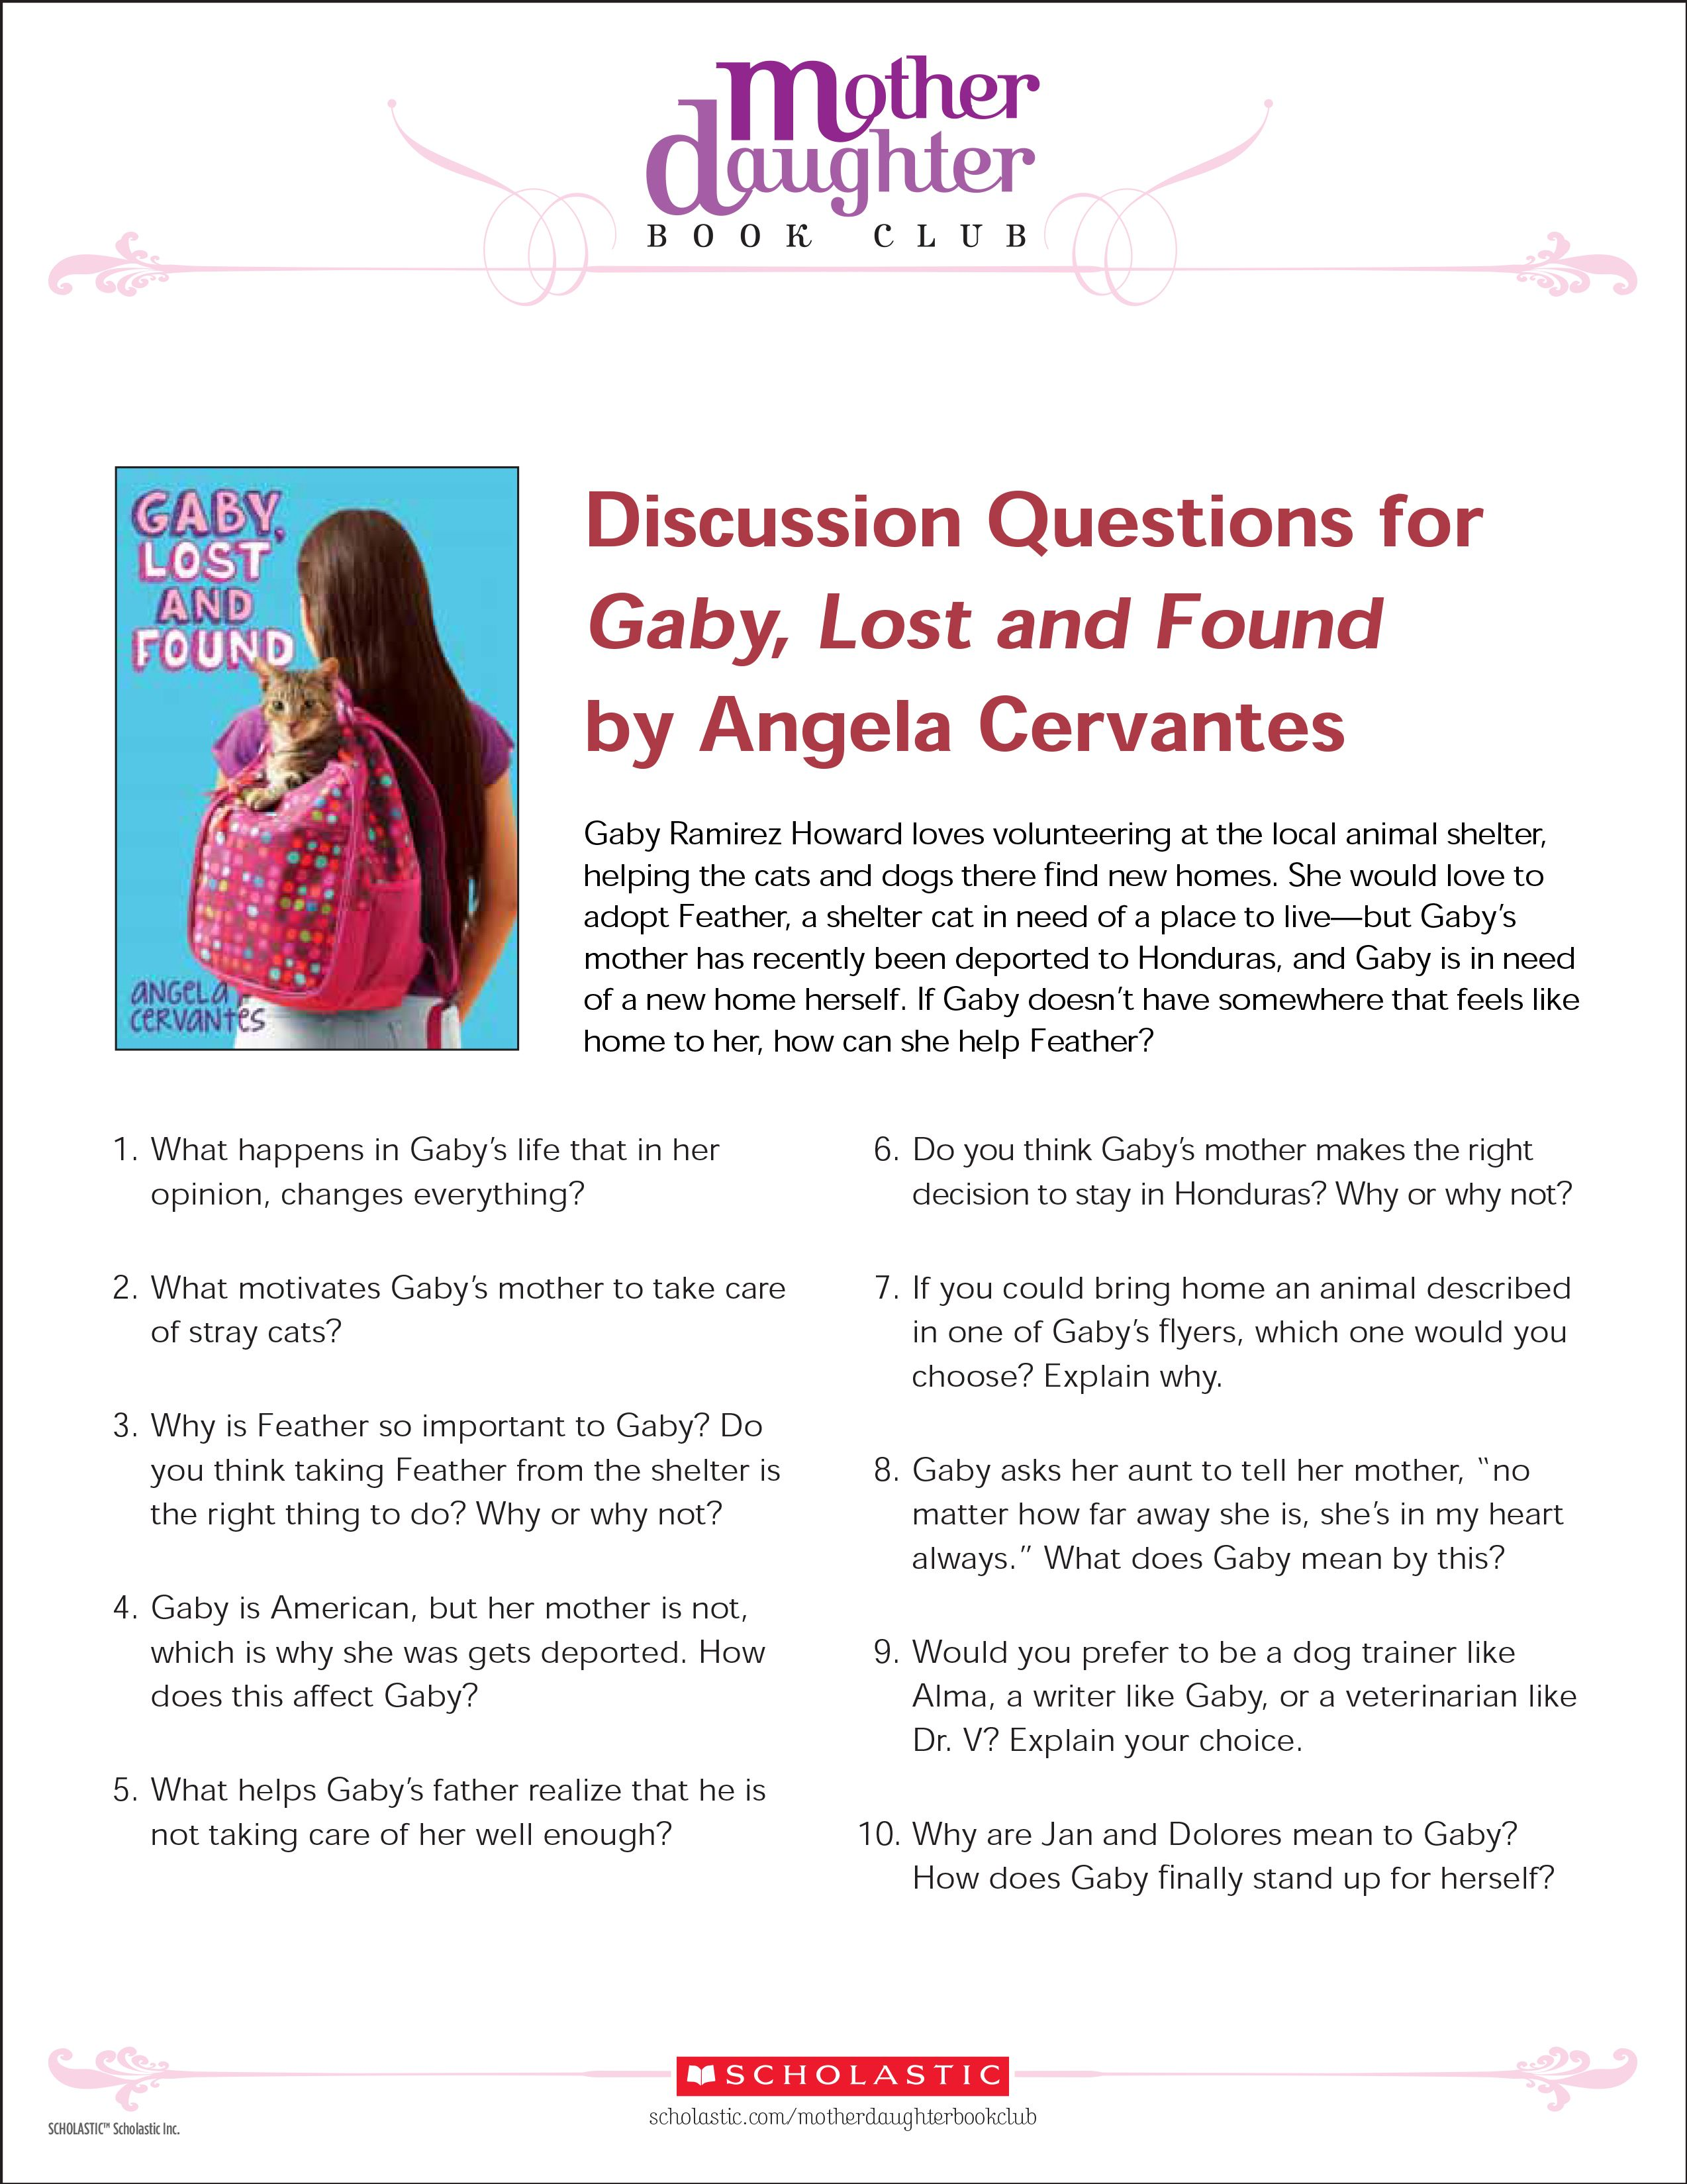 Discussion Questions For Gaby Lost And Found By Angela Cervantes